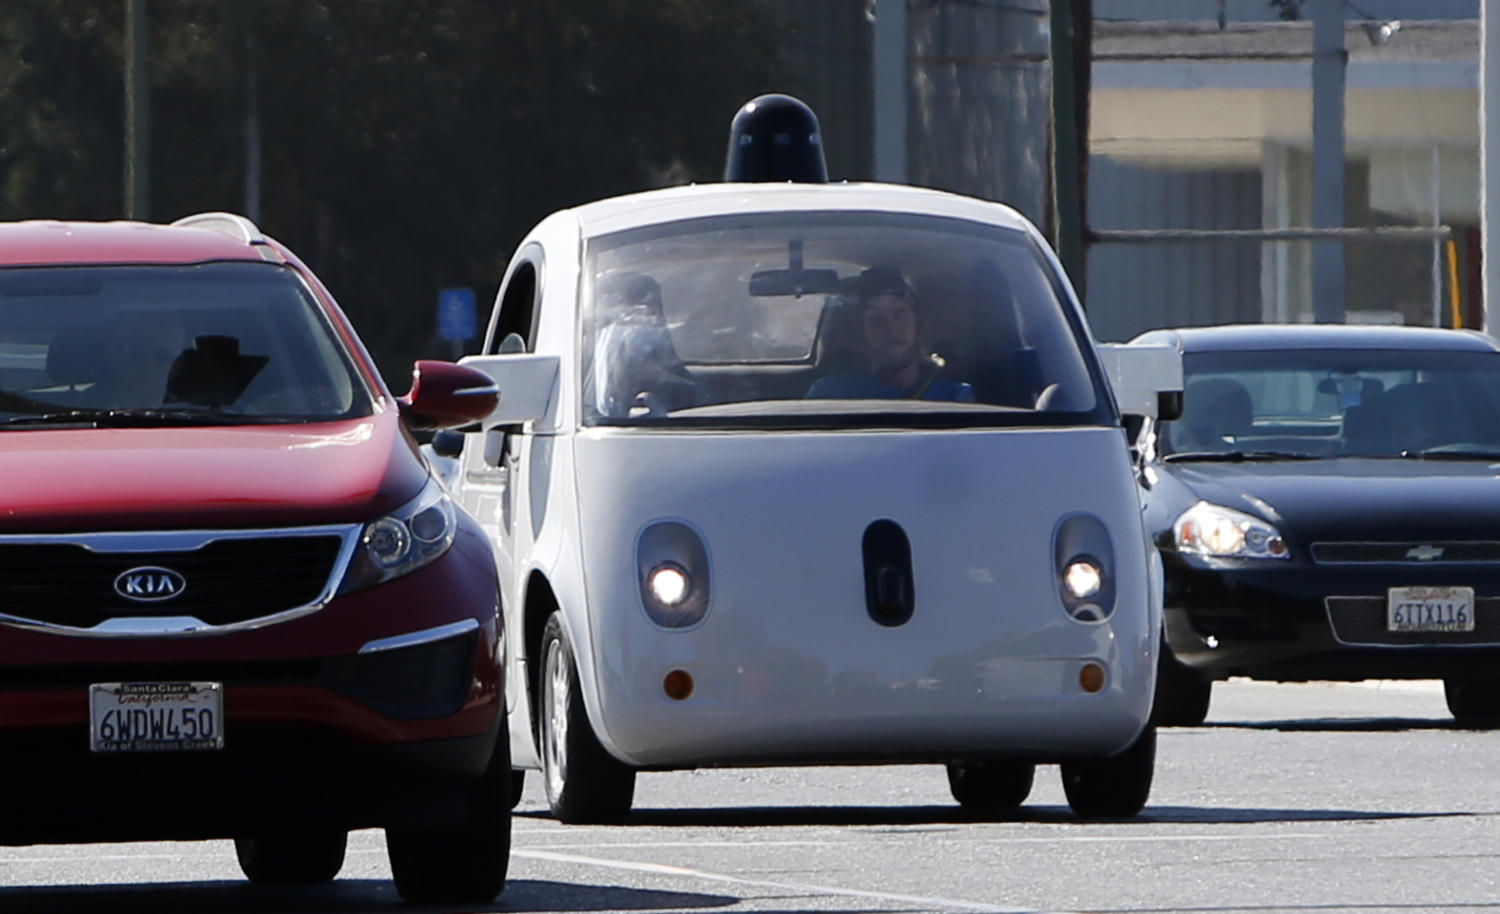 A Google self-driving car travels eastbound on San Antonio Road in Mountain View, Calif., in an October 2015 file image. (Karl Mondon/Bay Area News Group/TNS)